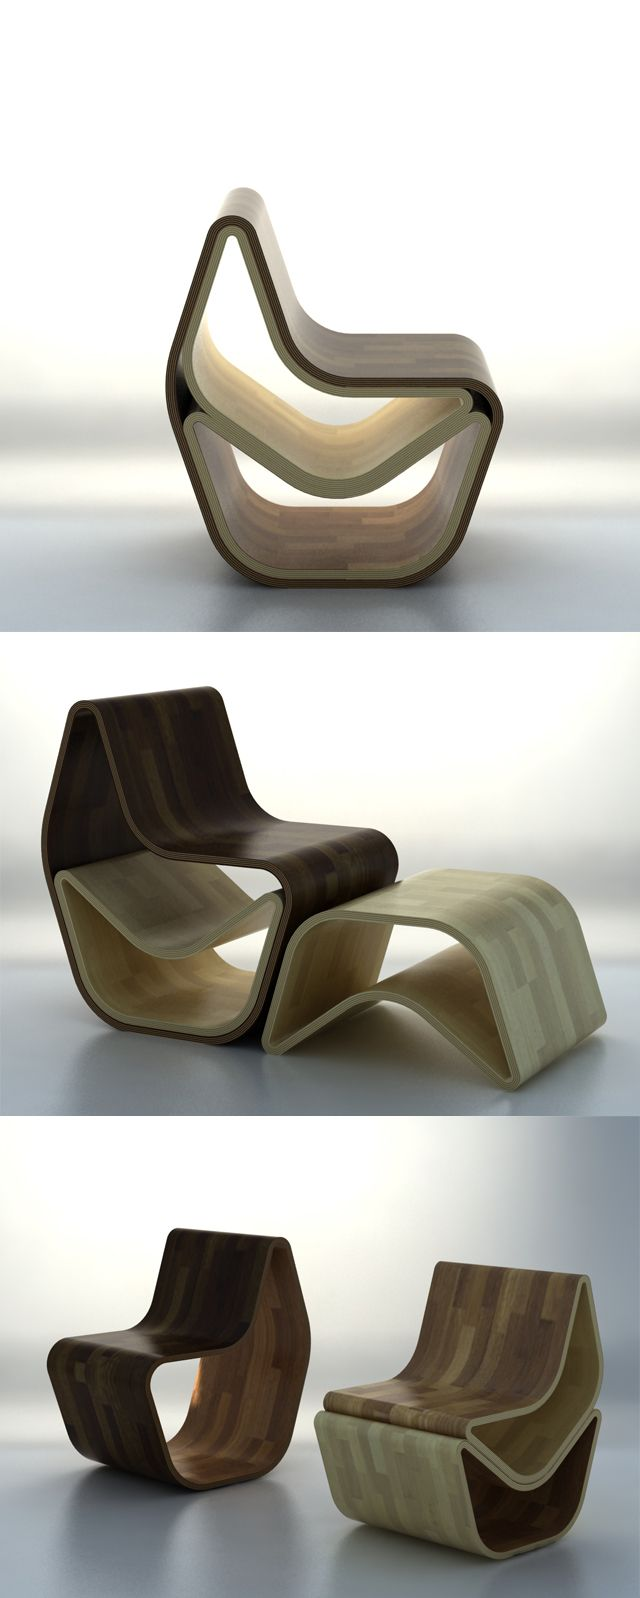 The GVAL Chair, by OOO My Design, is as multifunctional piece that can be (are you ready for it?) a chair, a chair with a footrest, a chair with a footrest & a stool, two chairs, or a chair and two stools. Inspired by the rings of a tree that represent age, the GVAL is made from alternating sheets of bent plywood that create a similar ring-like pattern.